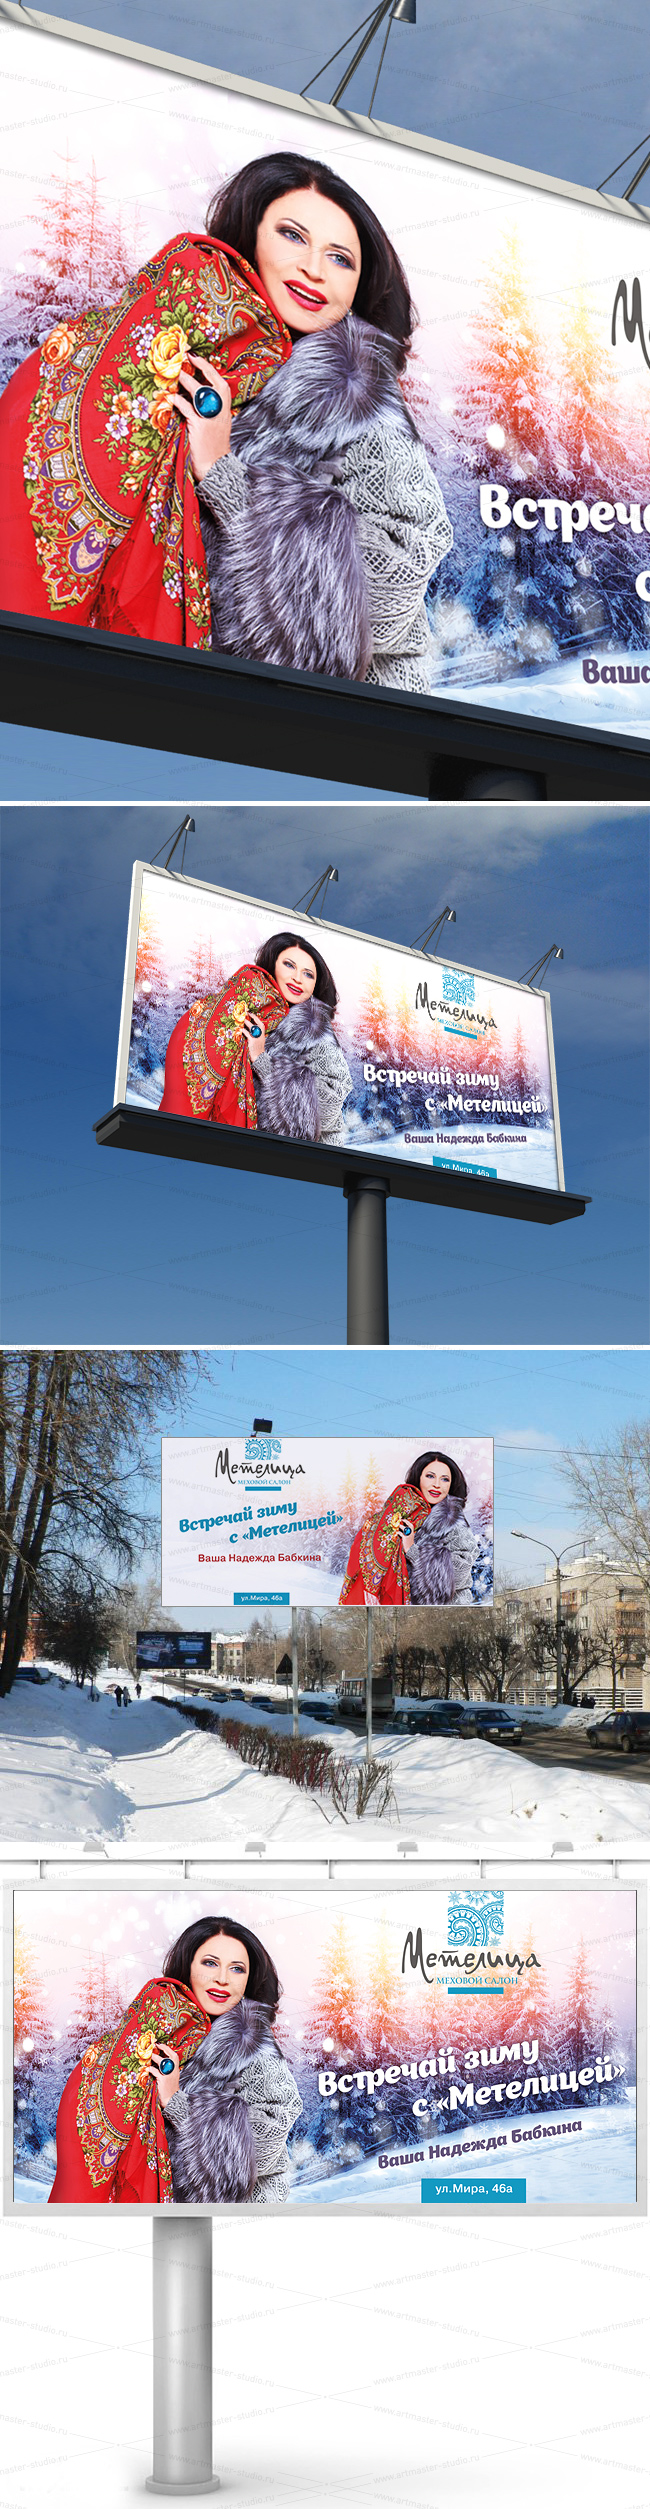 Metelica_Babkina_billboard_am